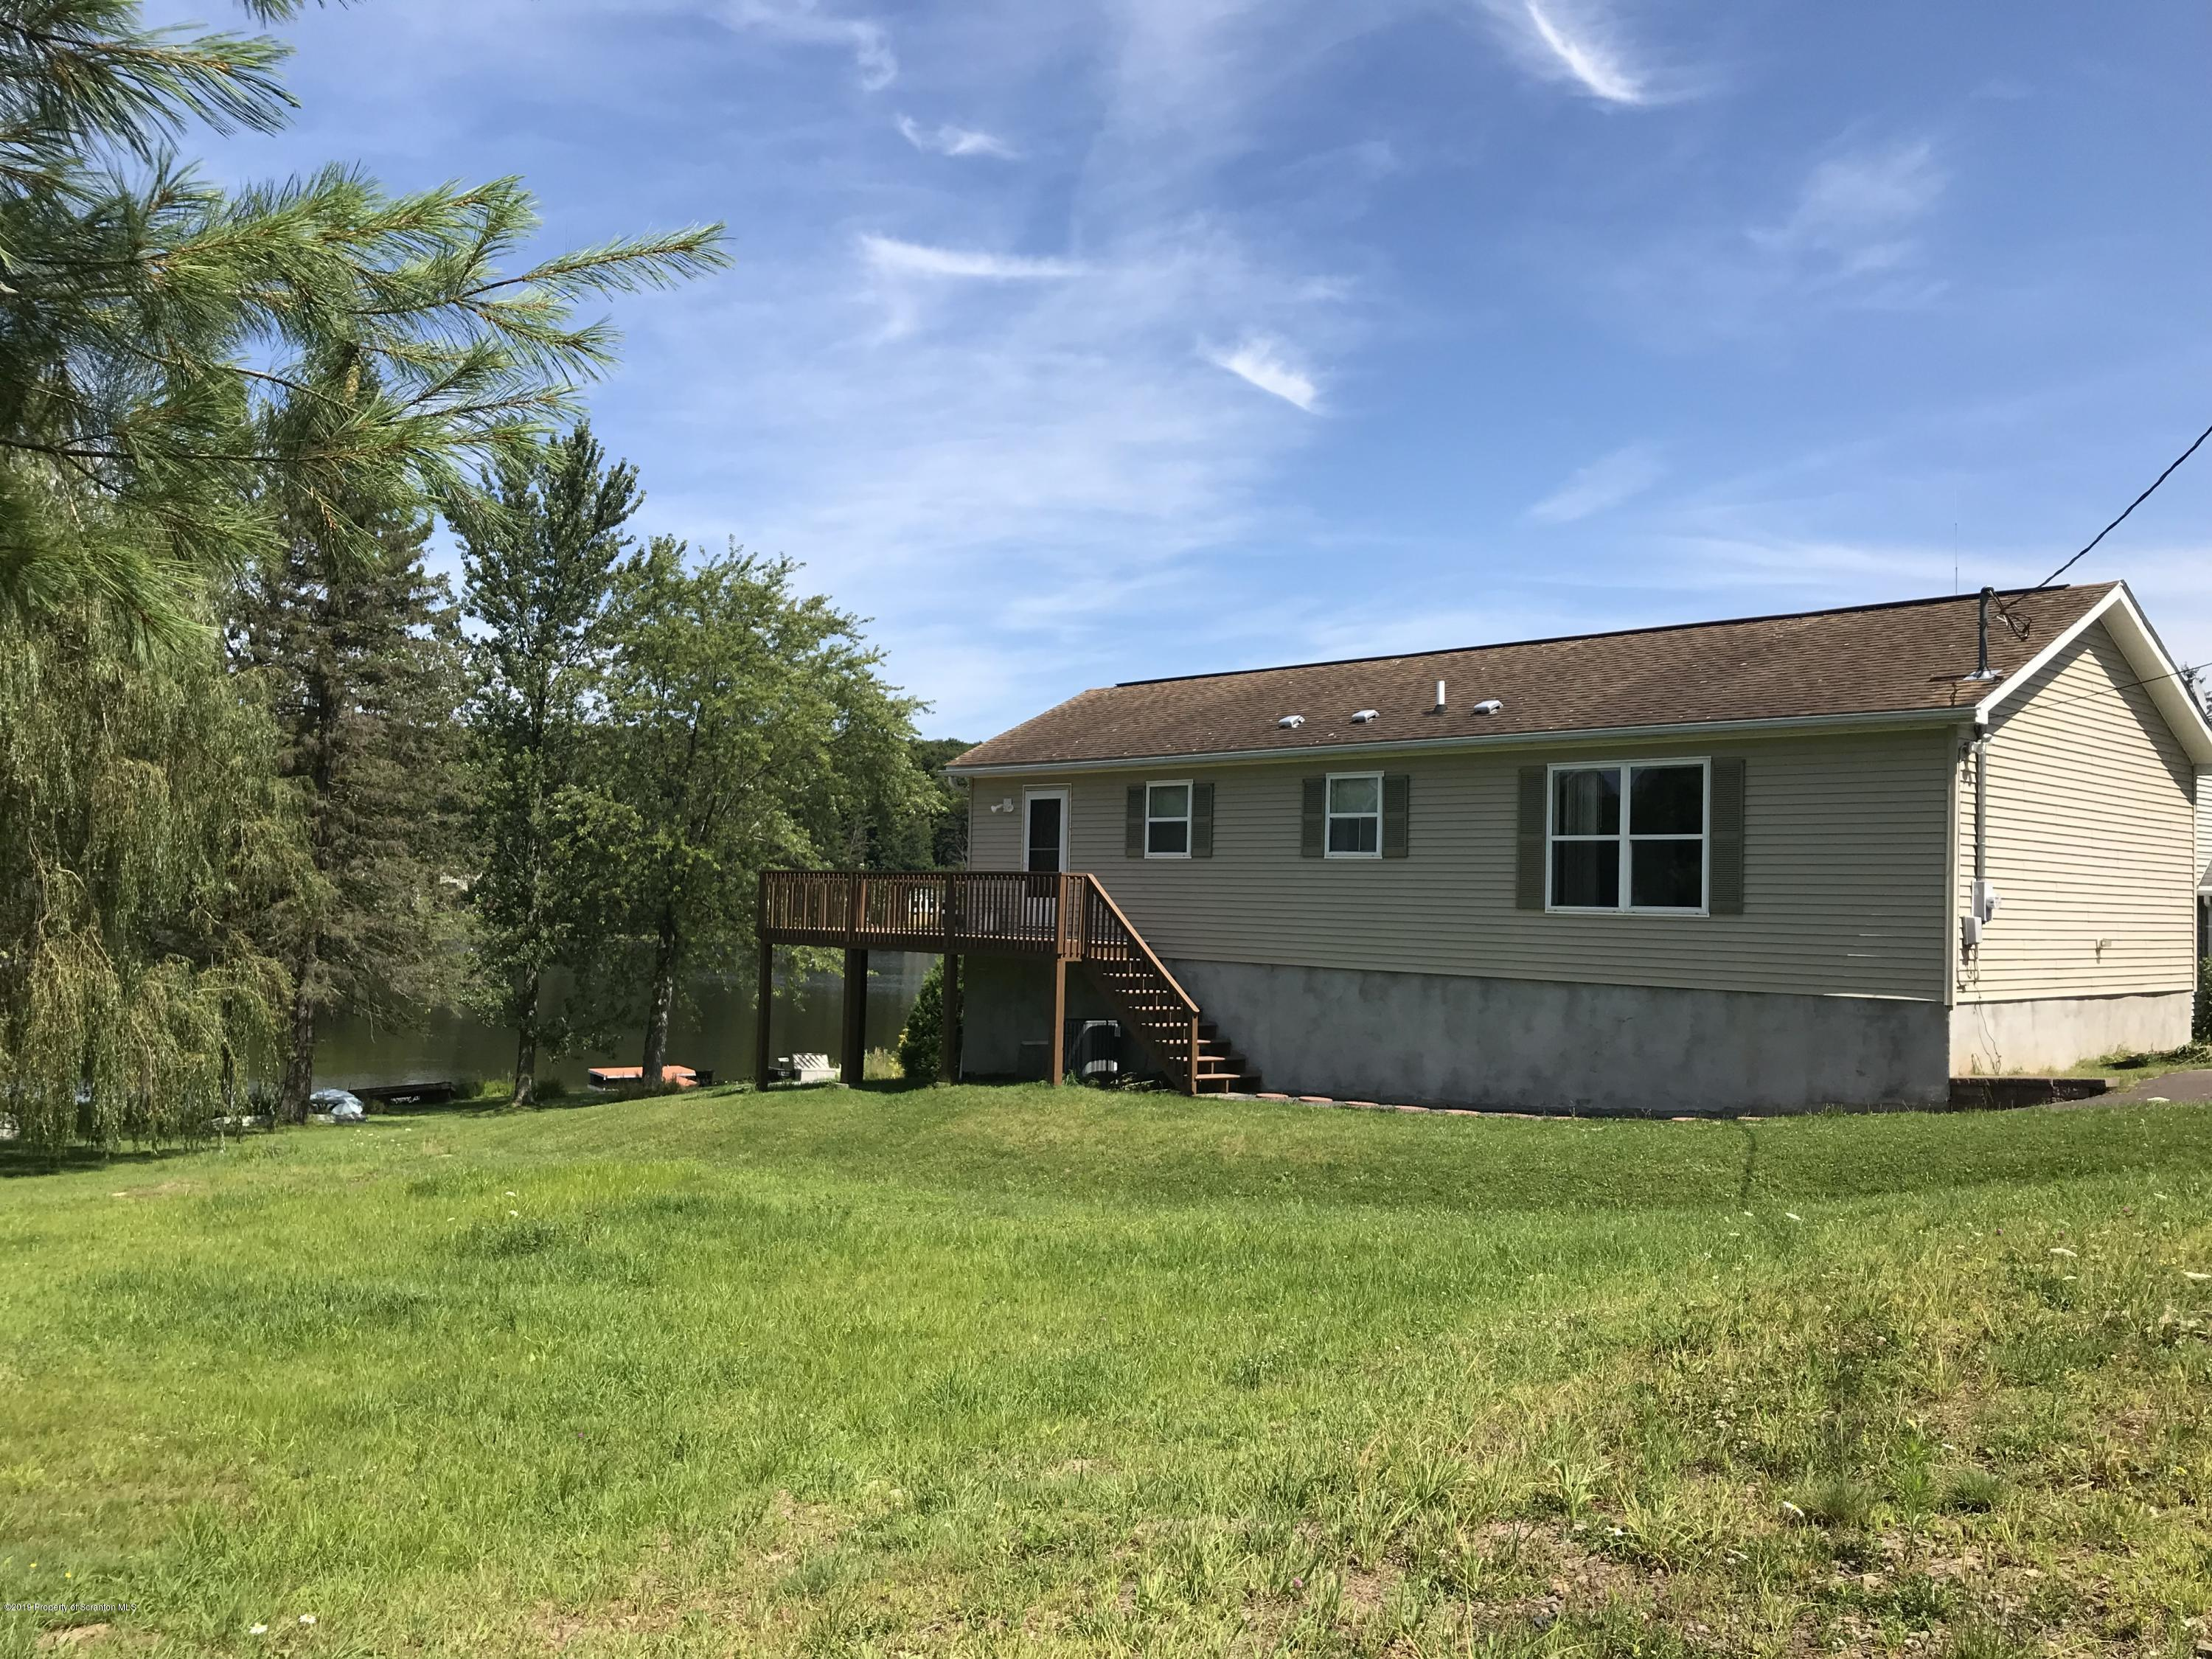 799 Lake Spangenberg Rd, Jefferson Twp, Pennsylvania 18436, 3 Bedrooms Bedrooms, 5 Rooms Rooms,2 BathroomsBathrooms,Single Family,For Sale,Lake Spangenberg,19-4376